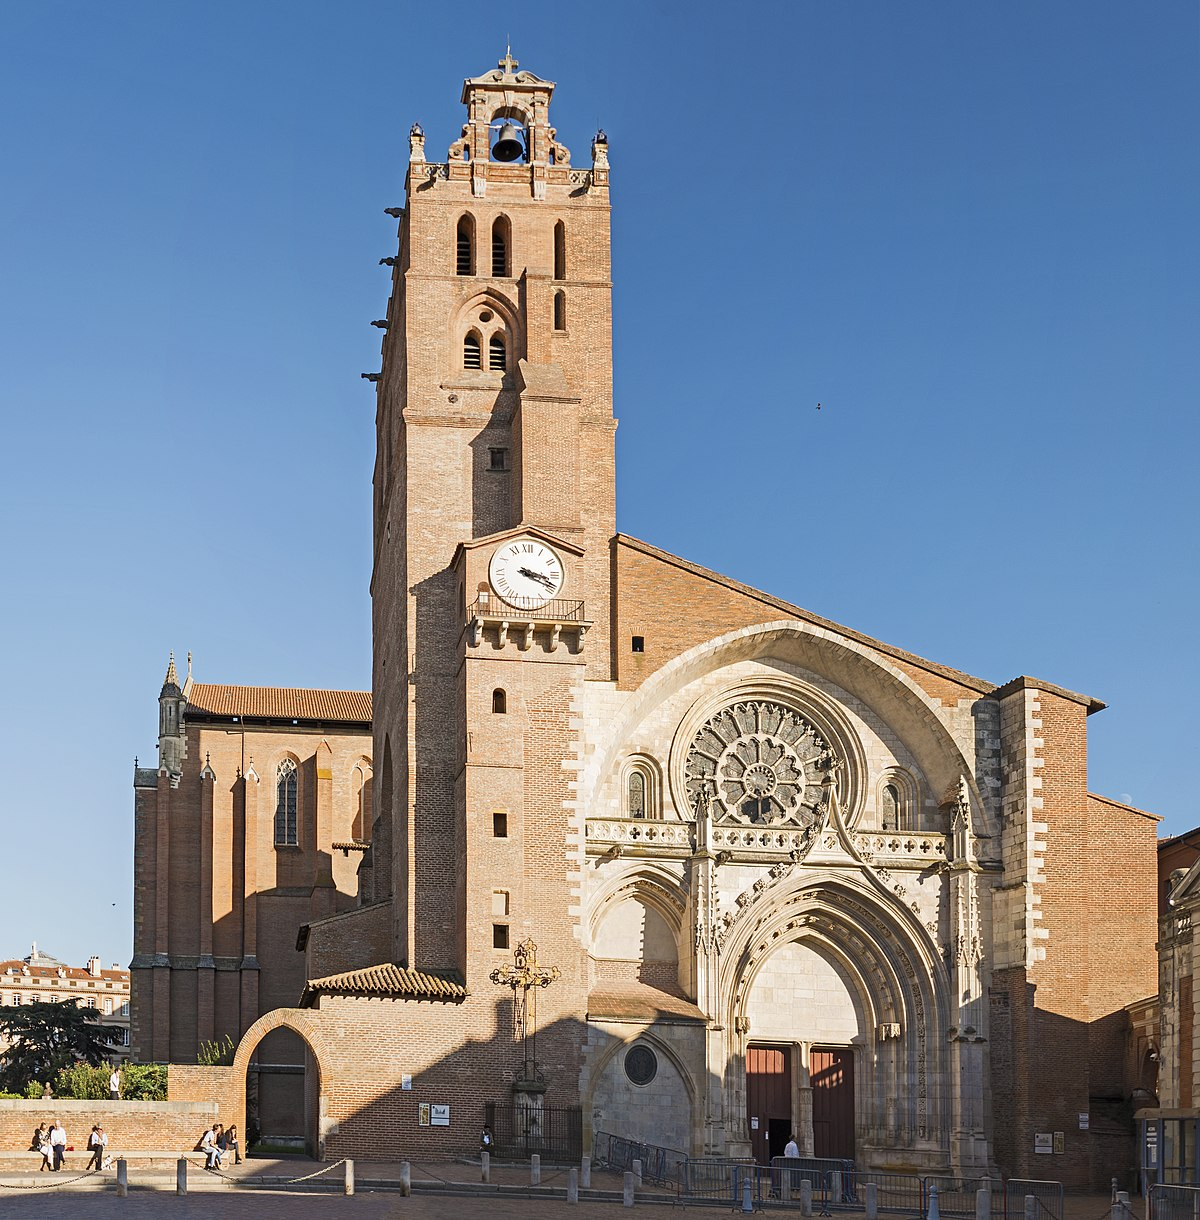 Toulouse Cathedral - Wikipedia: https://en.wikipedia.org/wiki/Toulouse_Cathedral